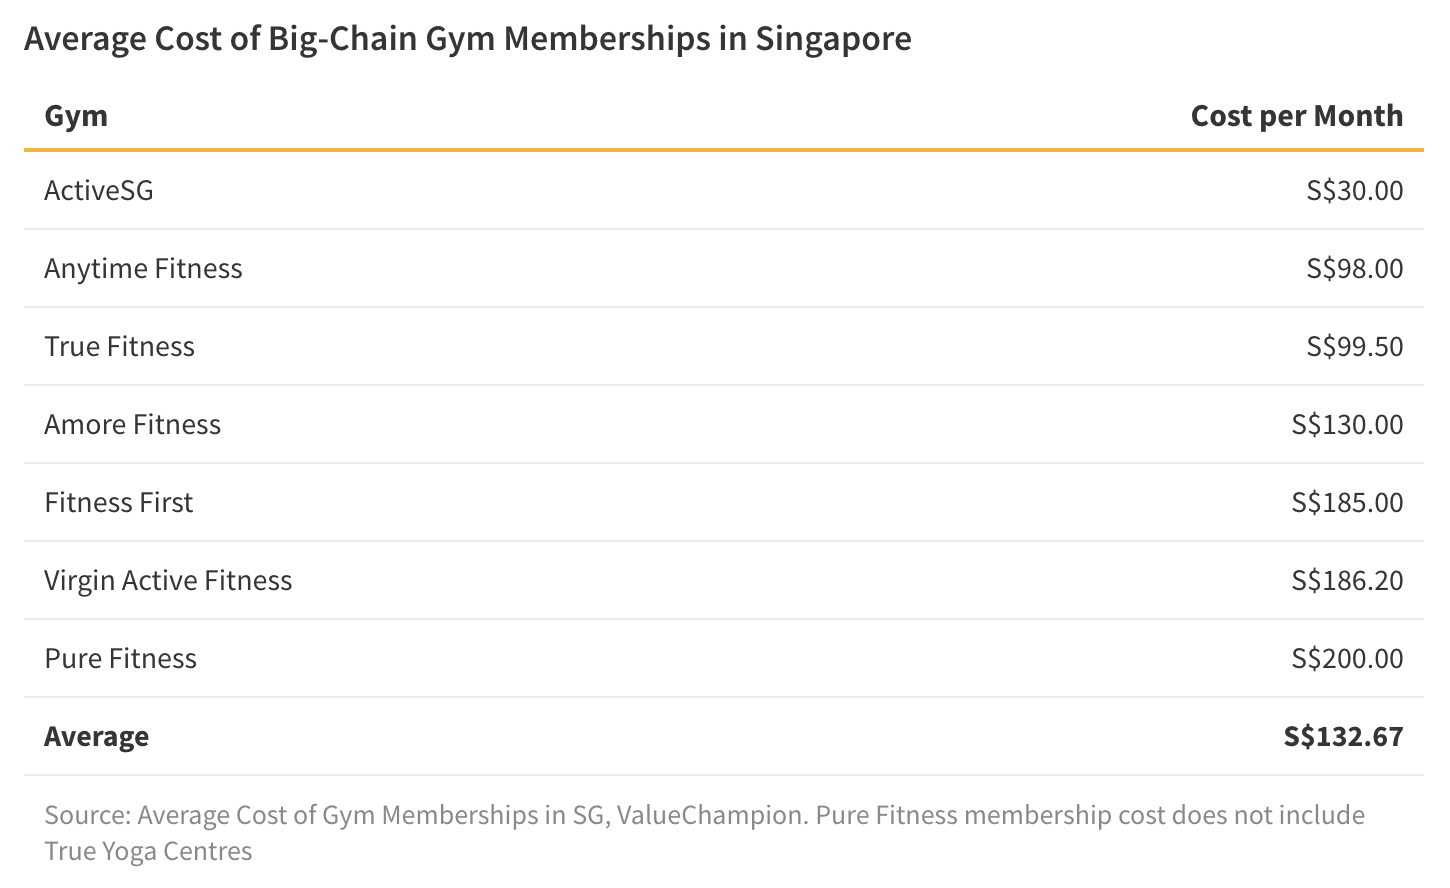 The cost of a big-chain gym membership in Singapore varies widely, averaging to about S$133